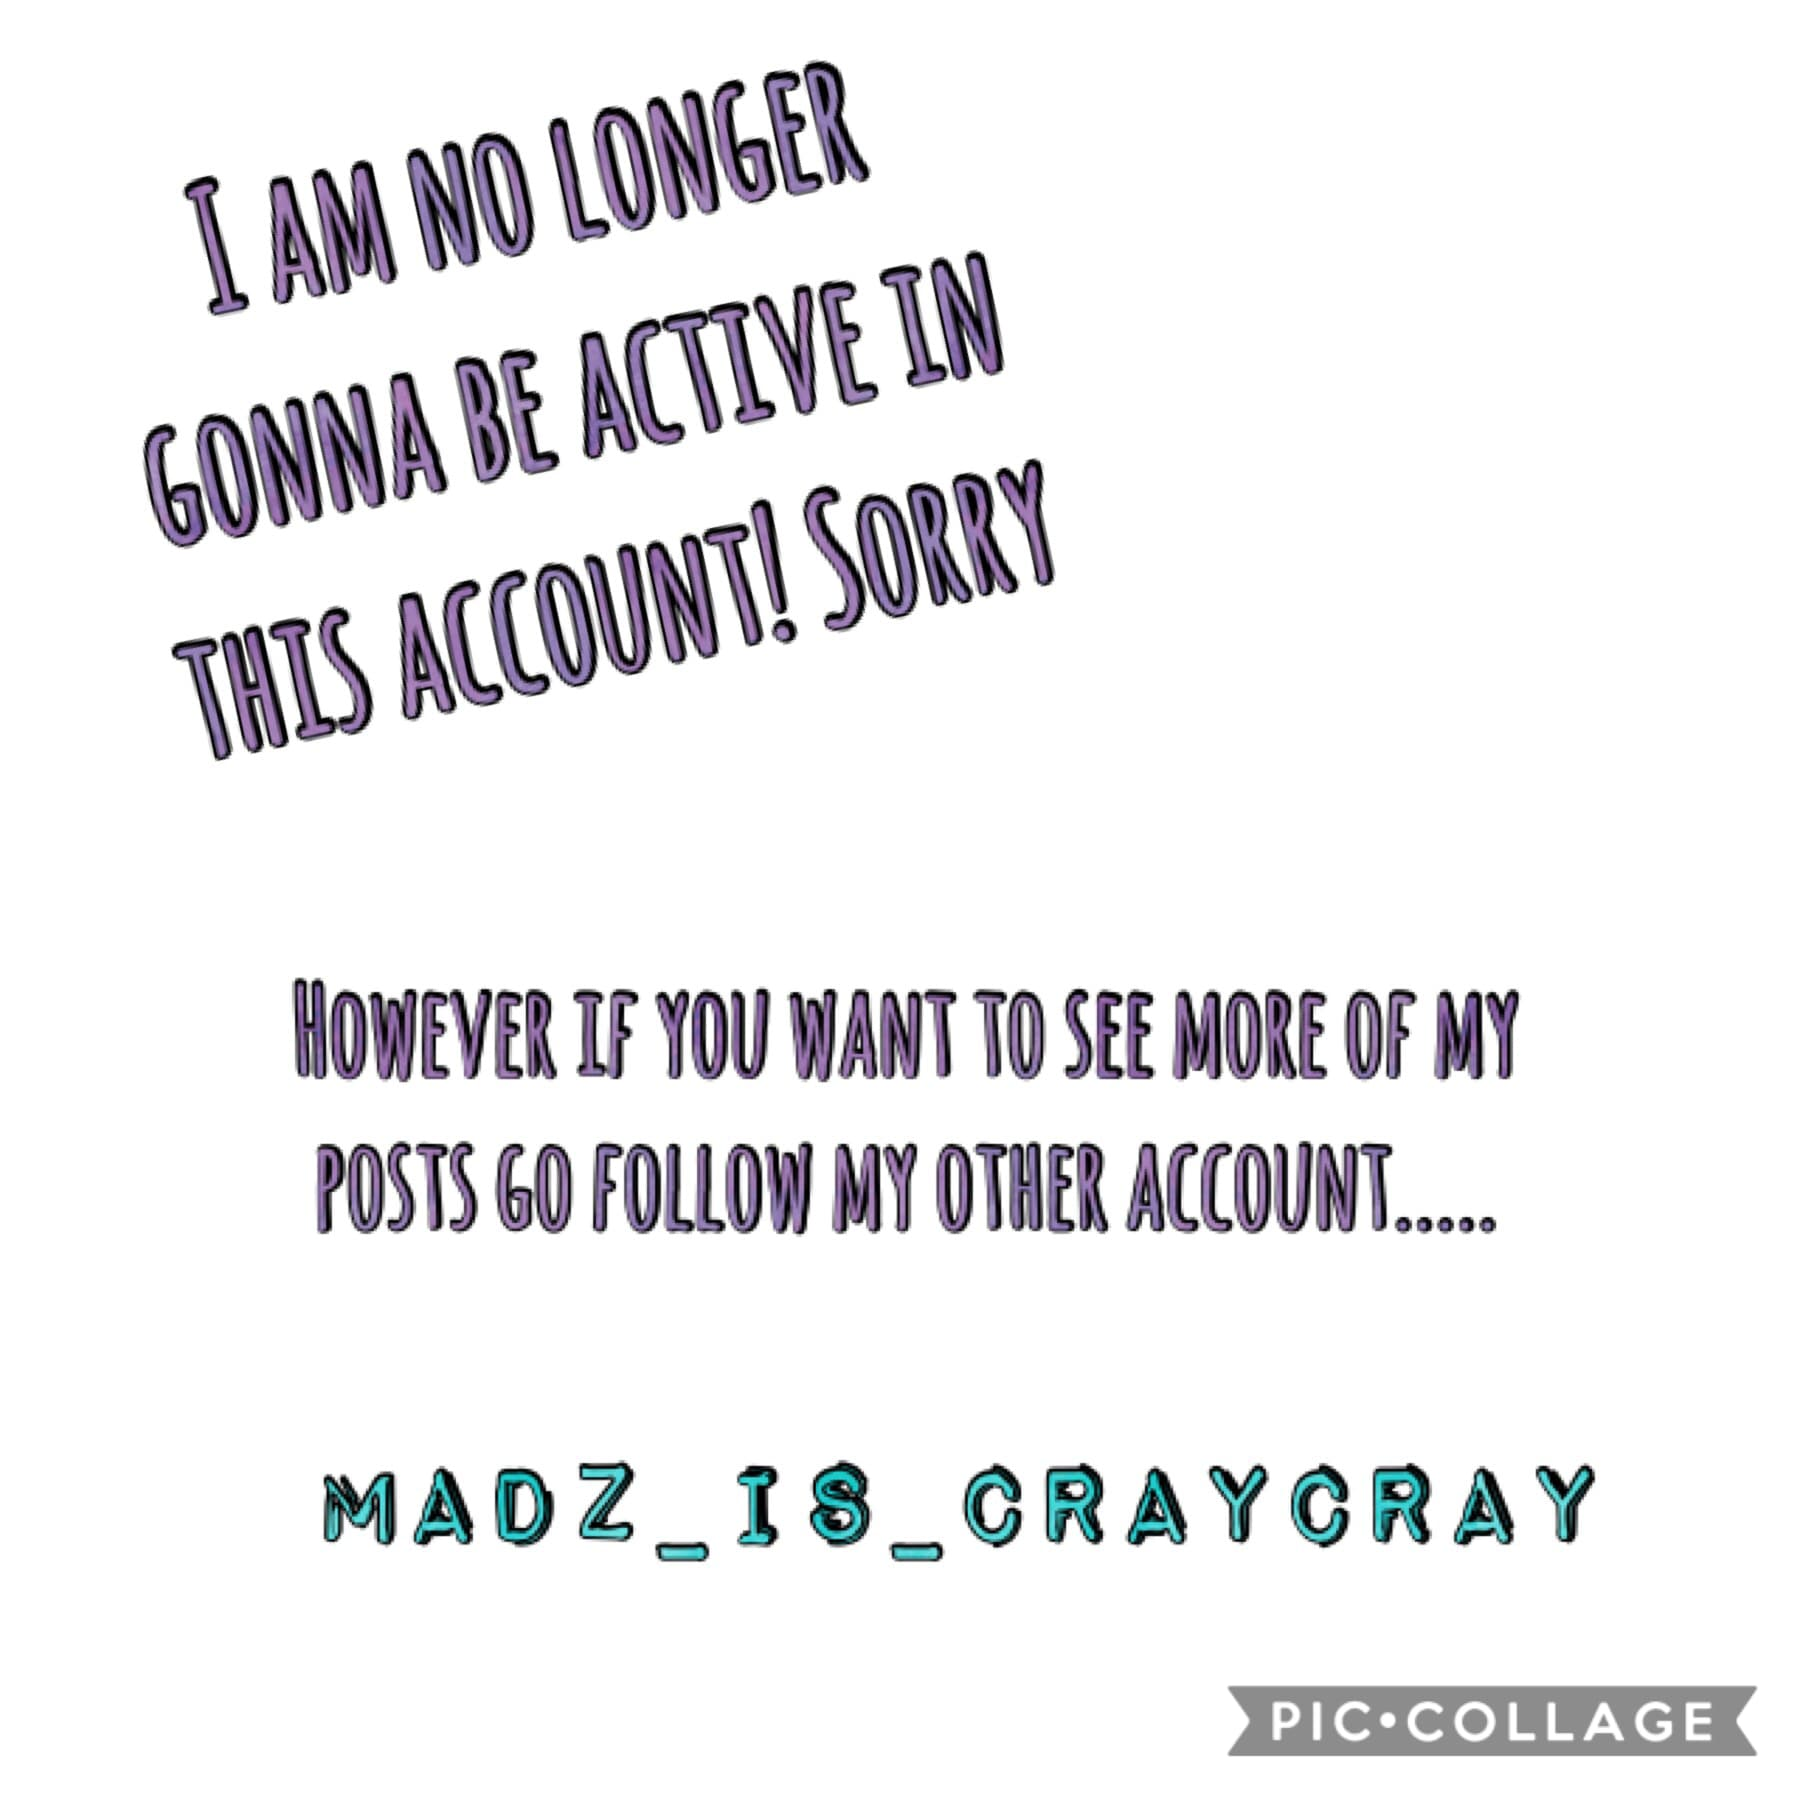 Sorry guys! 😐 but plz #madzfam go follow my other account that I will because on!